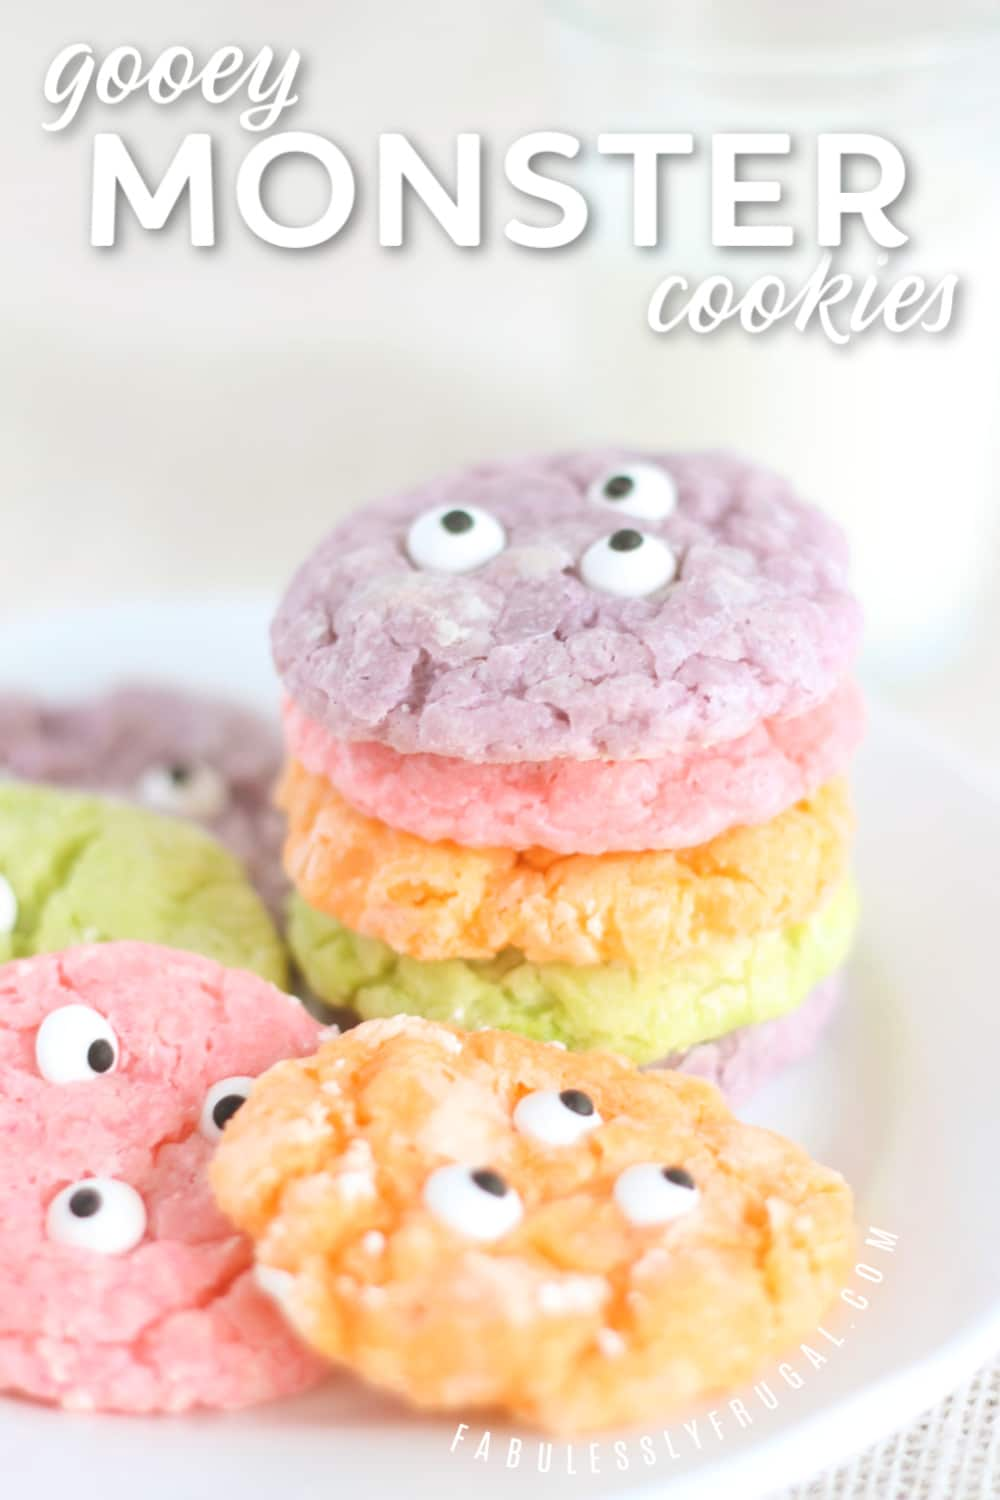 Gooey monster cookies with eyes